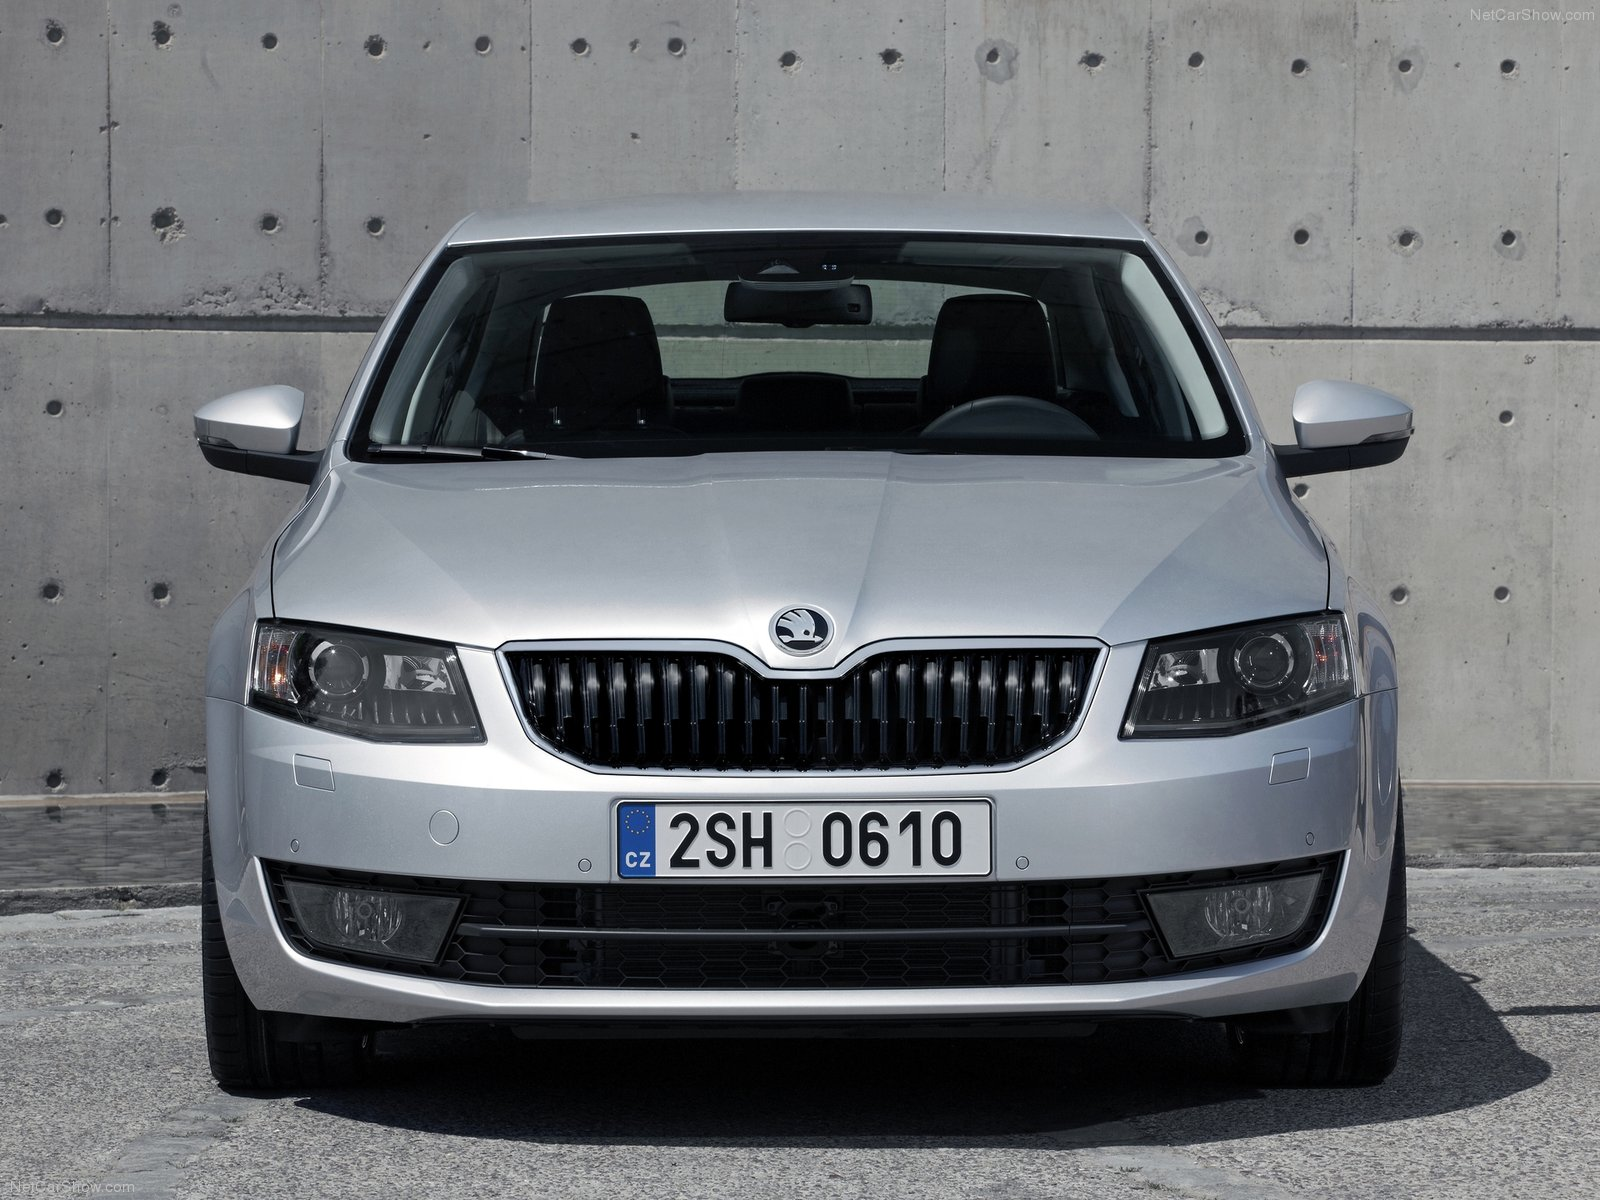 Skoda-Octavia_2013_1600x1200_wallpaper_28